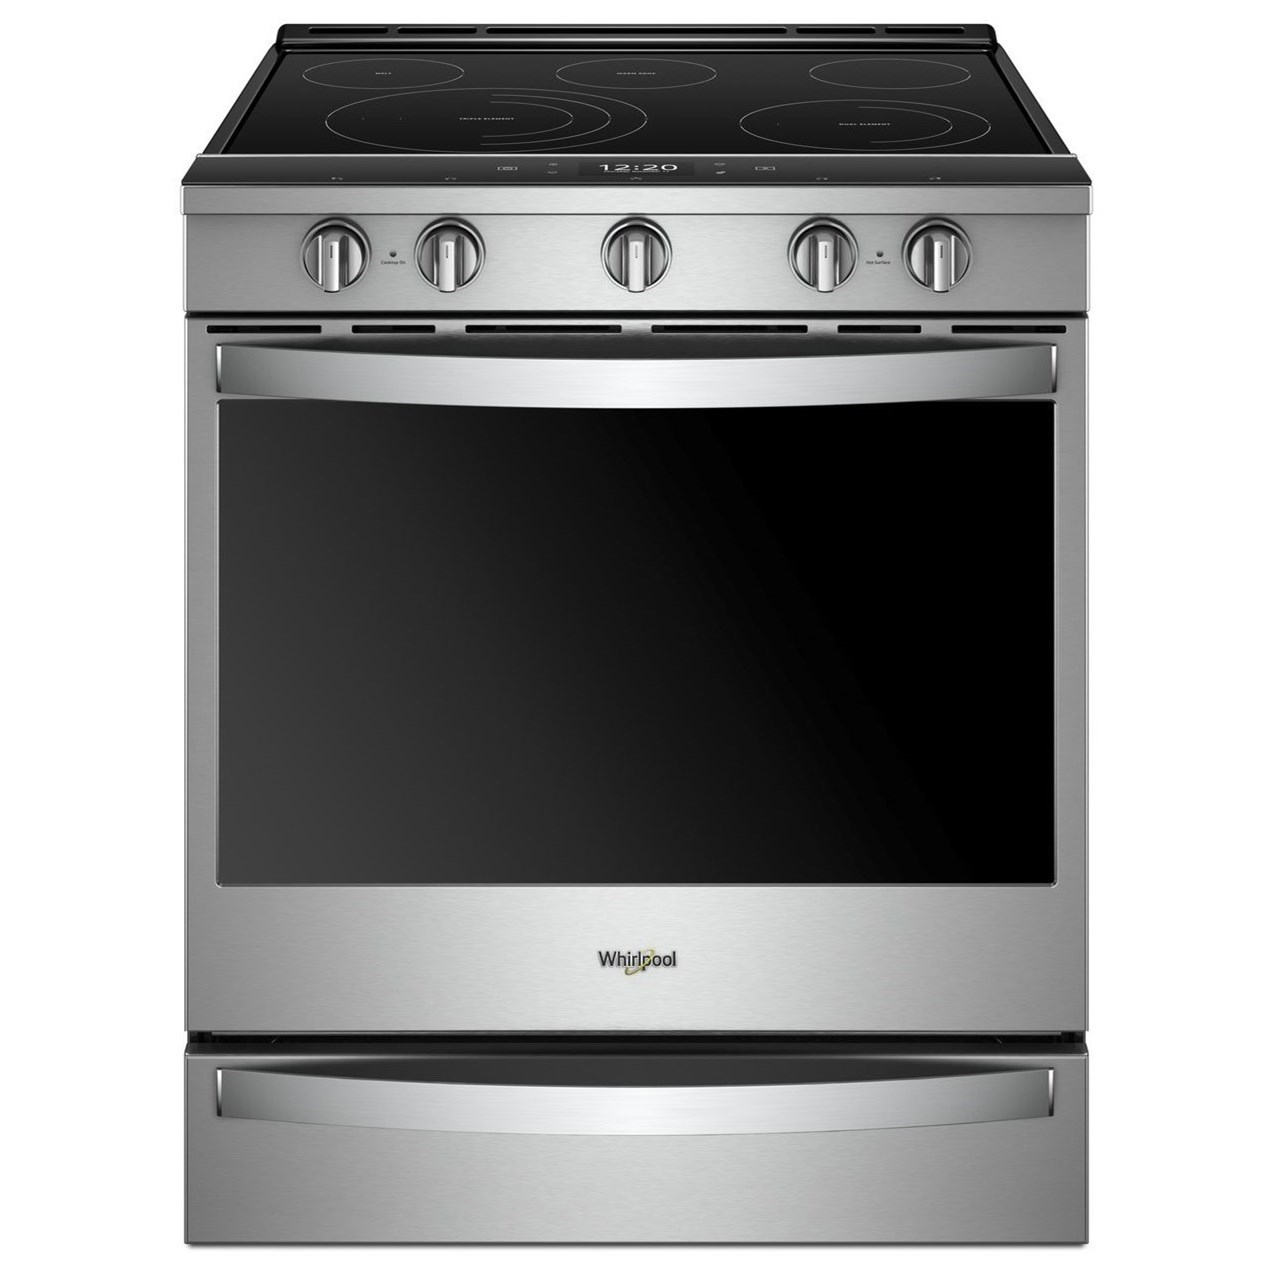 Electric Ranges 6.4 Cu. Ft. Smart Slide-in Electric Range by Whirlpool at Furniture and ApplianceMart